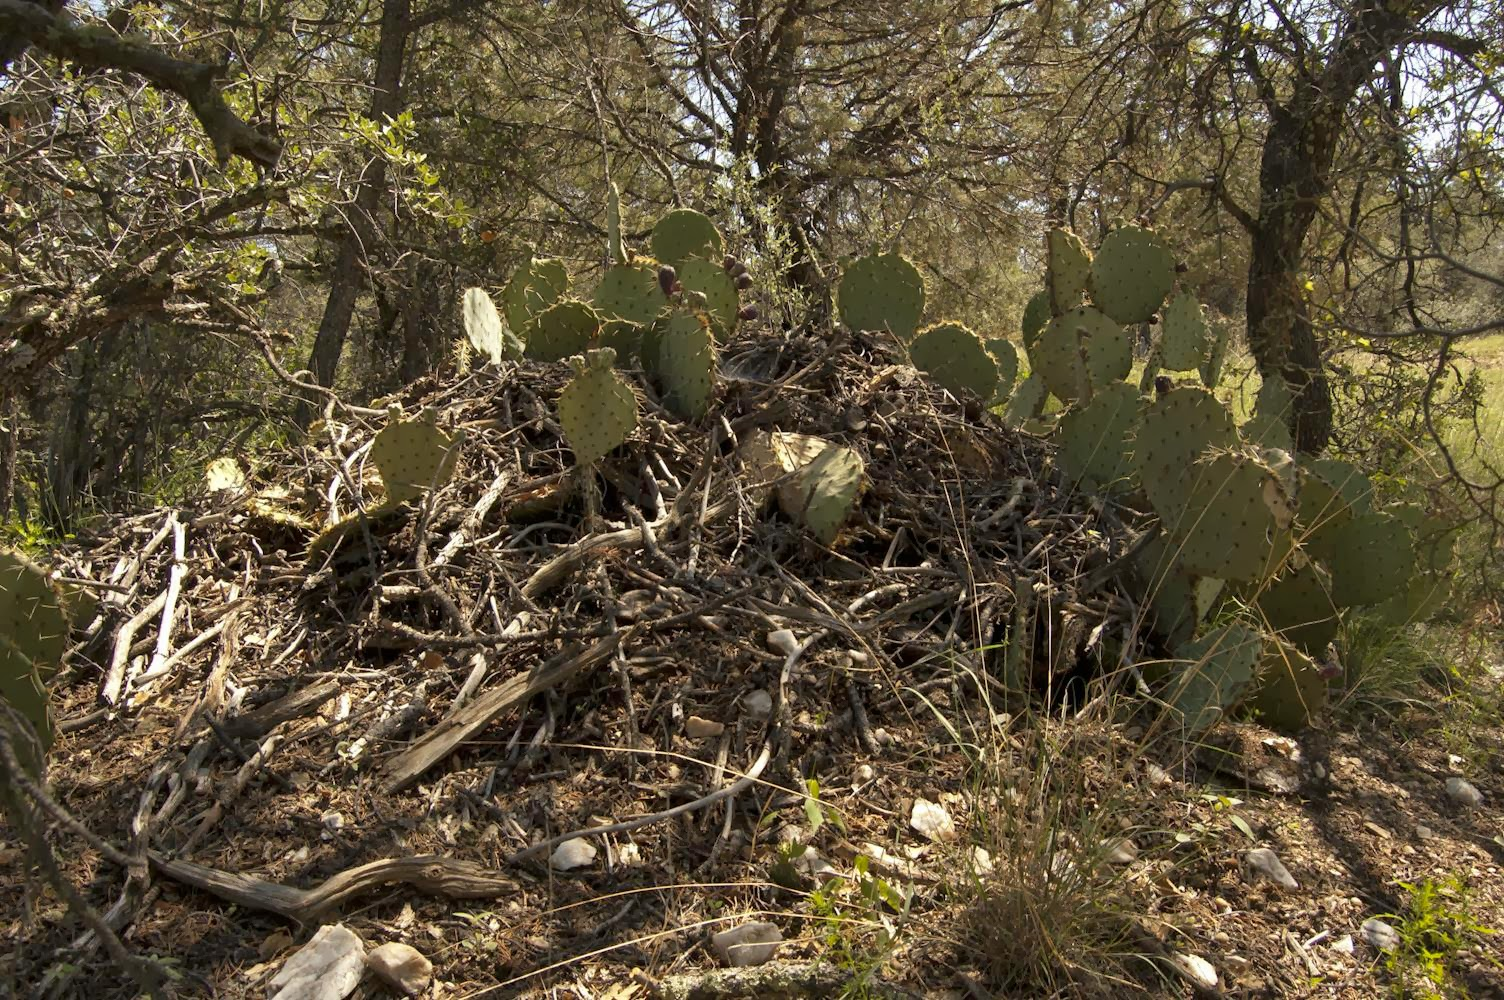 New Mexico Rodent to Live in New Mexico's